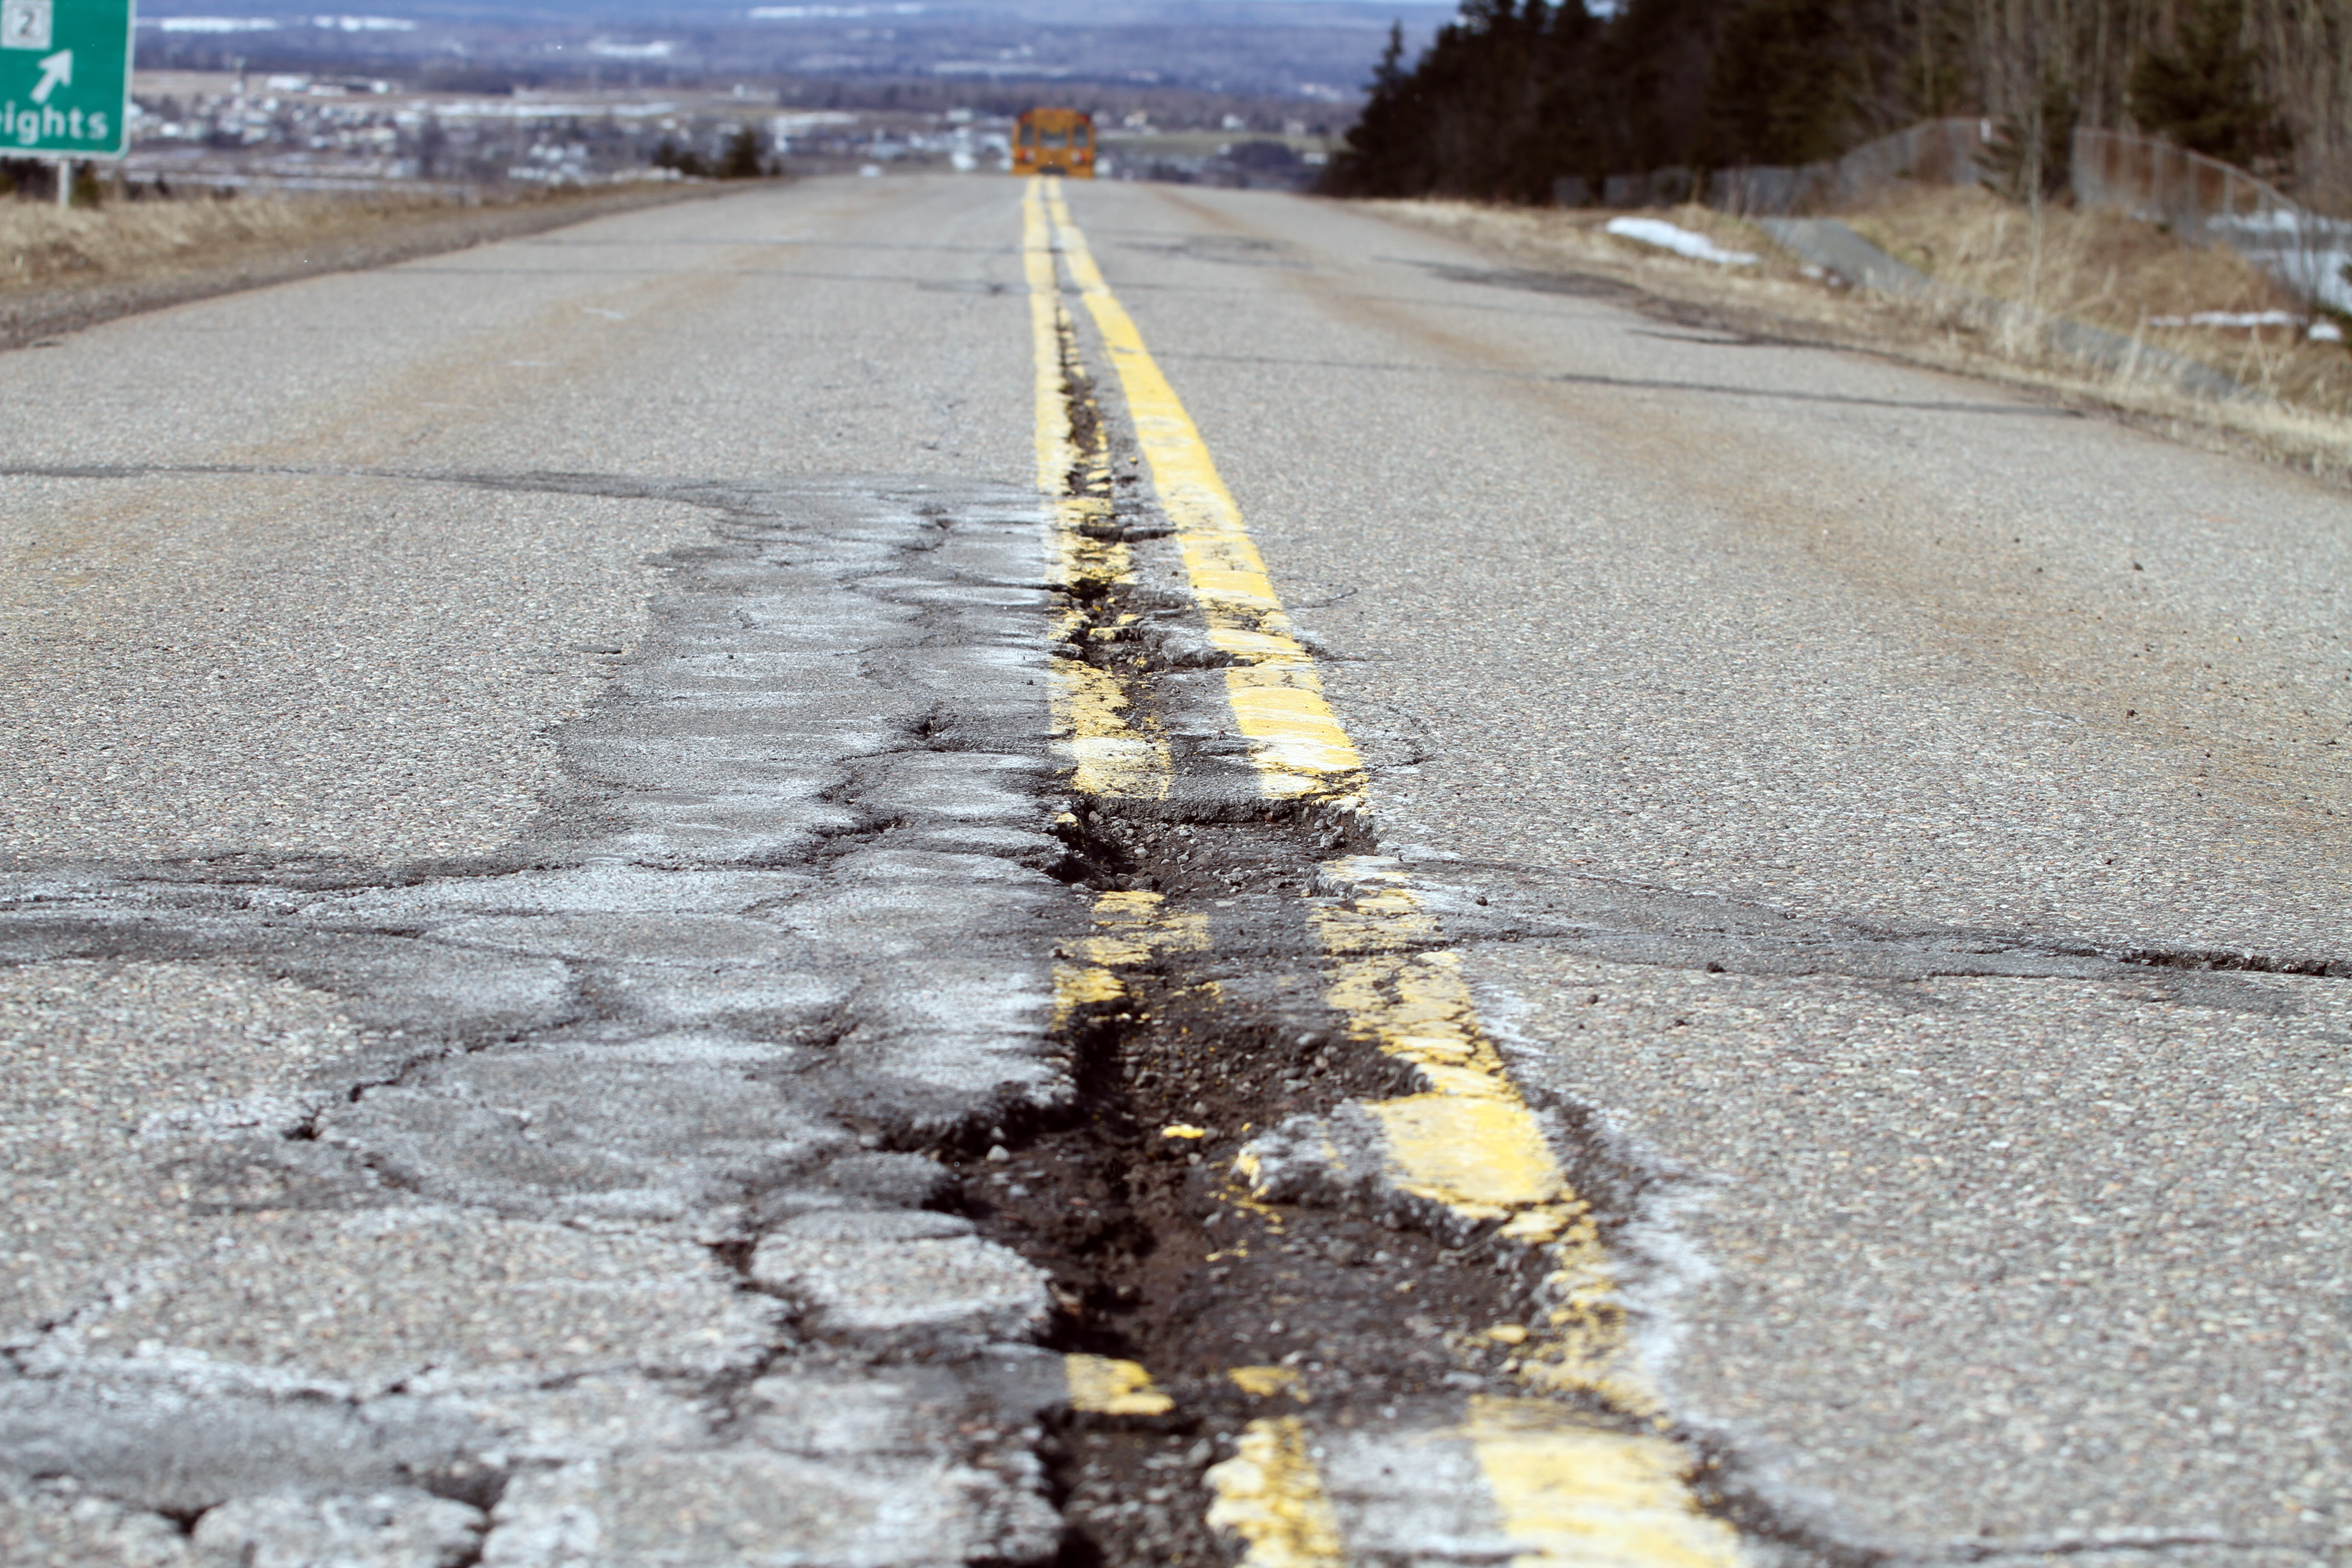 TISA member GEWI enables Pothole Repair Projects Using Waze Data